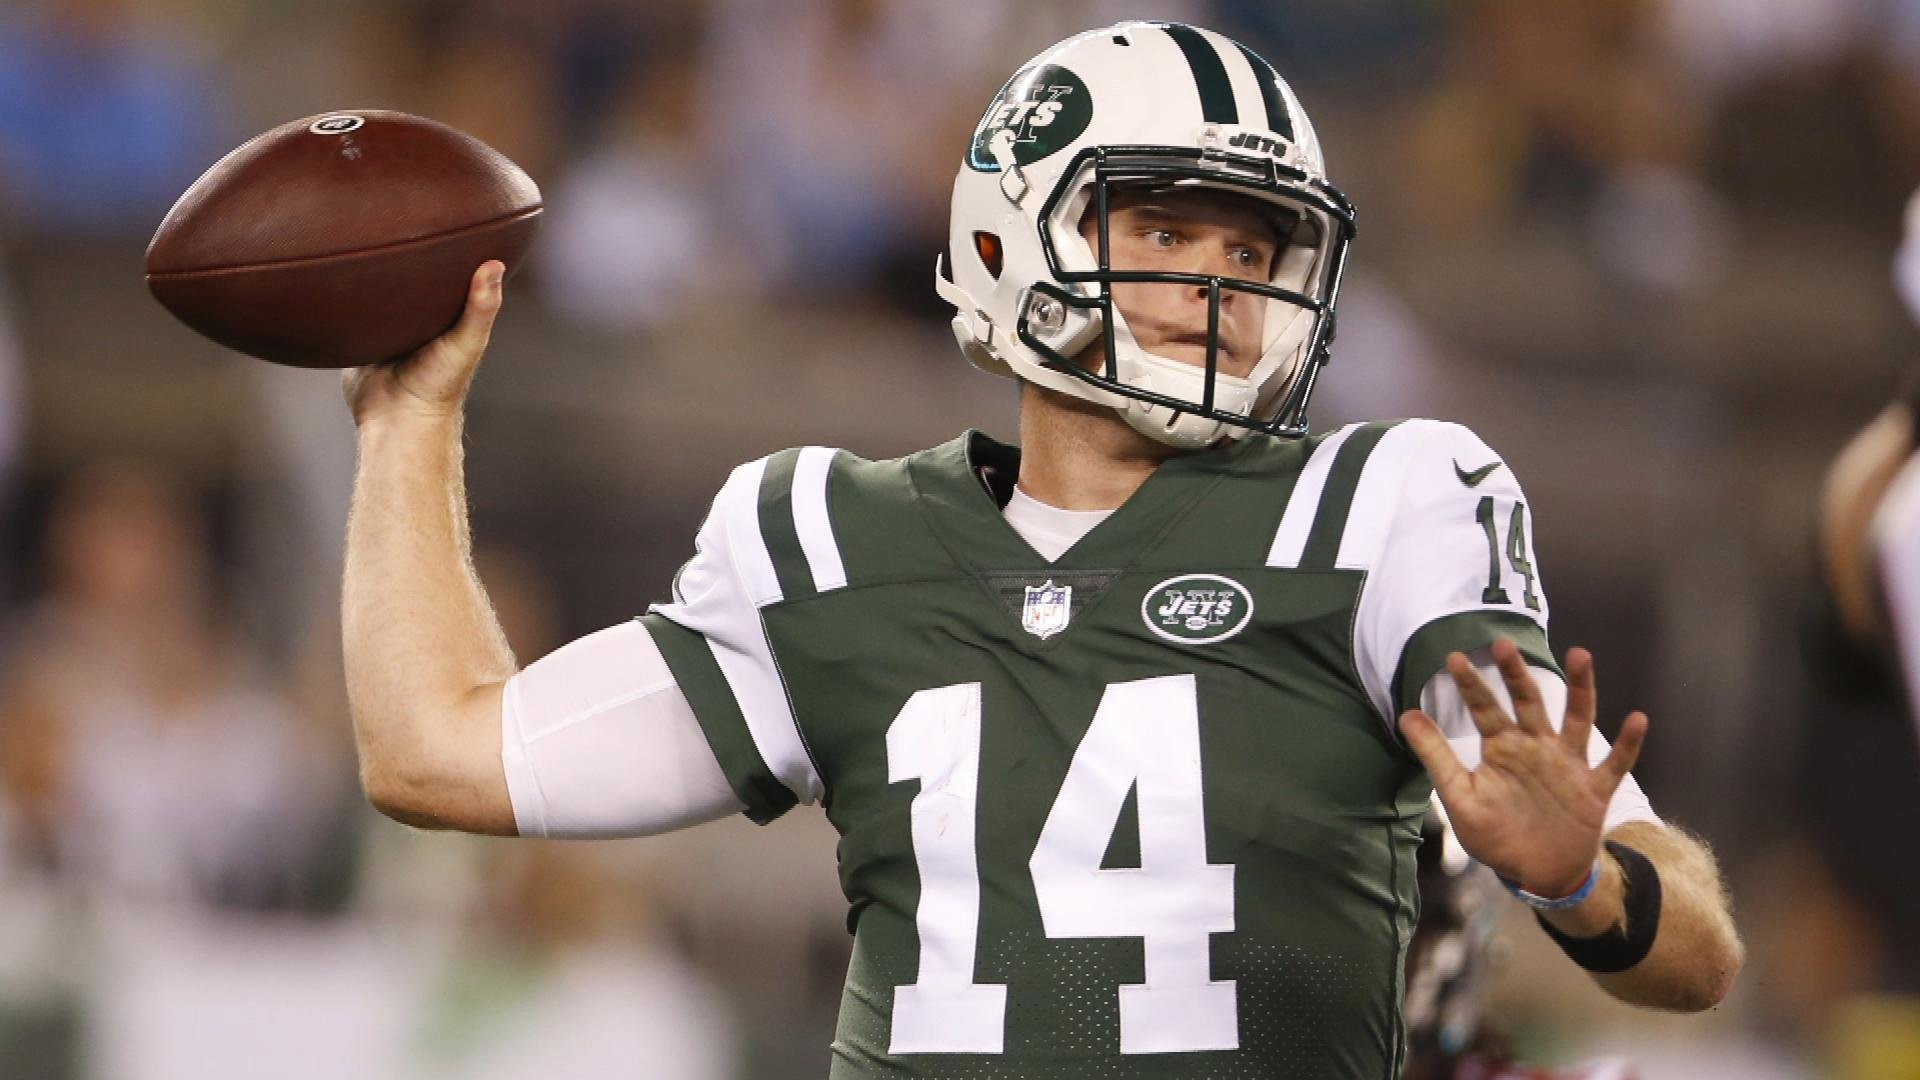 a080dbf136a Jets' Sam Darnold has rude awakening coming | NBC Sports